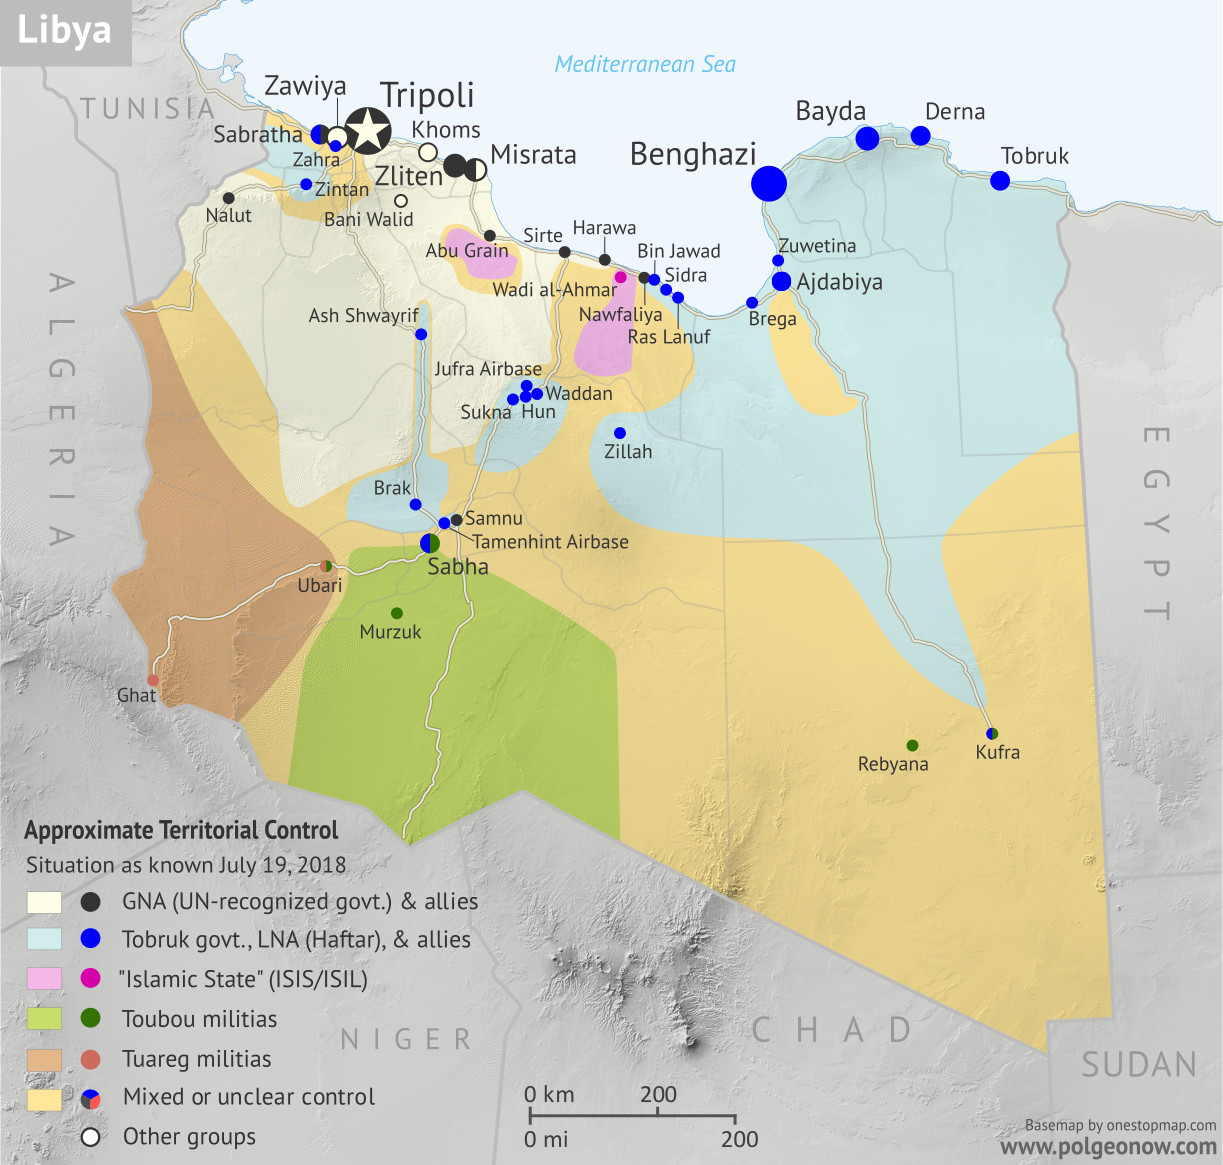 Libya: Who controls what? A concise, professional map of of who controls Libya now (July 2018). Shows detailed territorial control in the Libyan Civil War as of July 19, 2018, including all major parties (Government of National Accord (GNA); Tobruk House of Representatives, General Haftar's Libyan National Army (LNA), and allies; Tuareg and Toubou (Tebu) militias in the south; the so-called Islamic State (ISIS/ISIL); and other groups such as the National Salvation Government(NSG) and religious hardline groups). Includes terrain and major roads. Colorblind accessible.